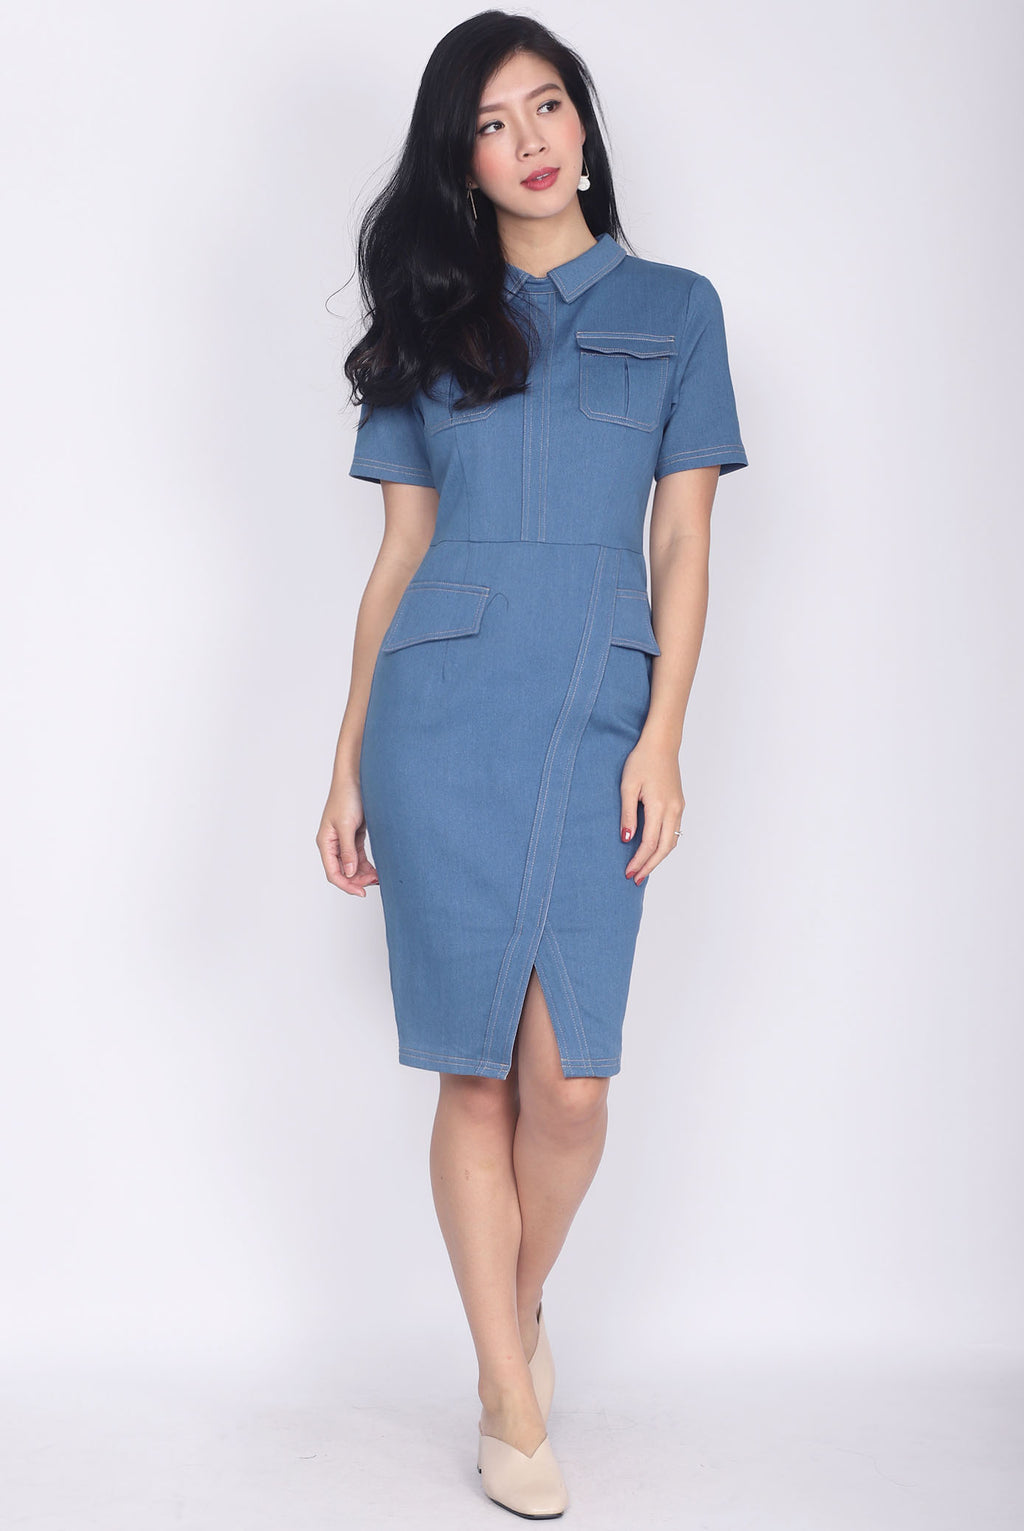 *Premium* Addisyn Denim Sleeve Pencil Dress In Blue